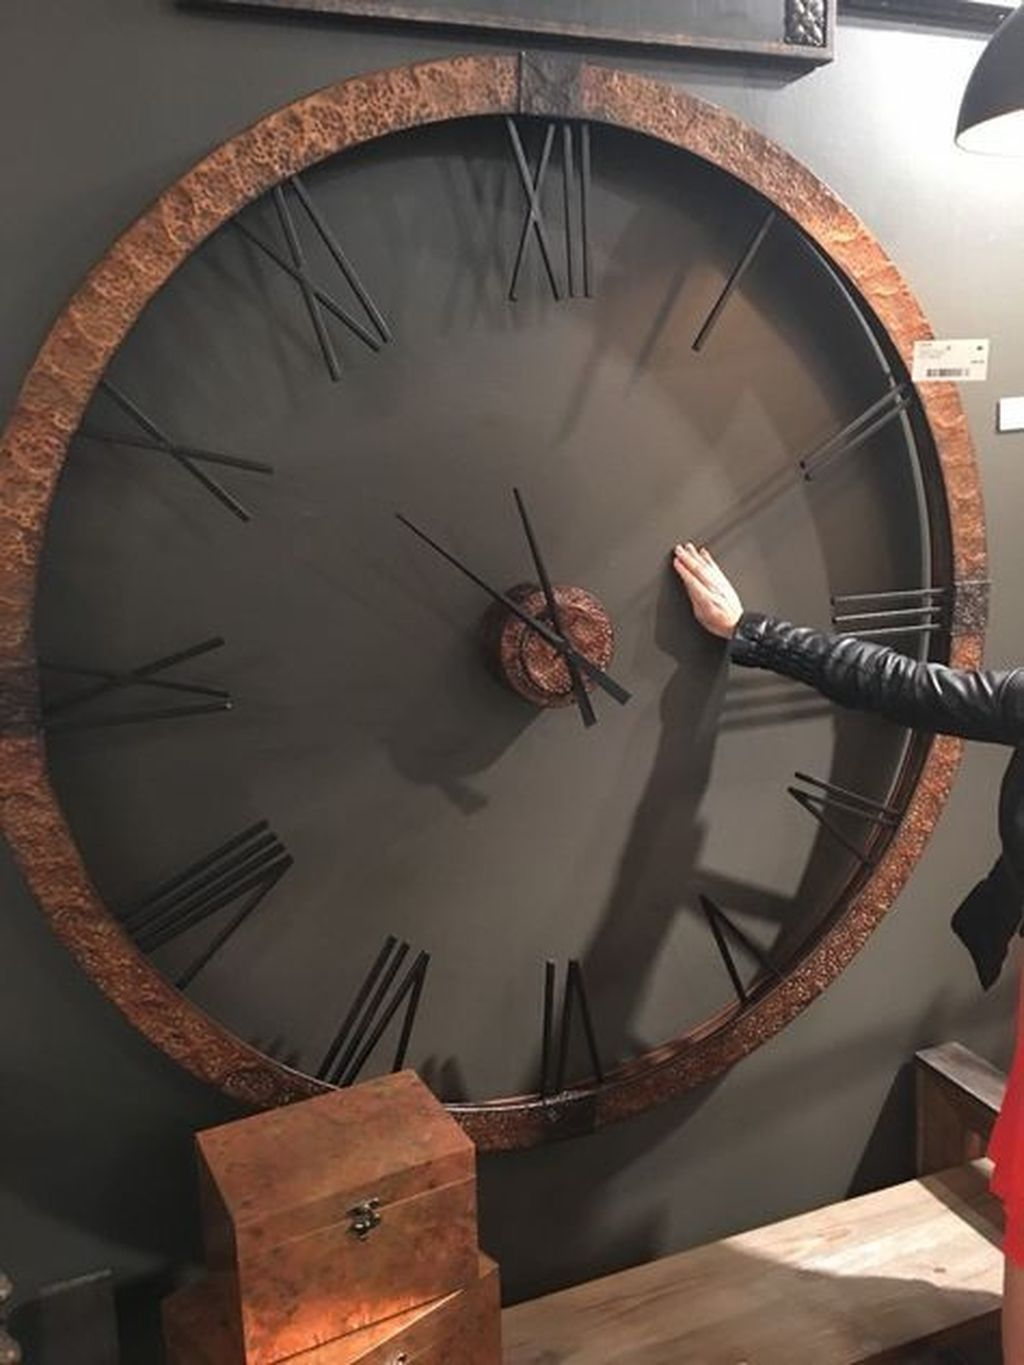 40 Stylish Clock Design Ideas With Photo Wall Decorations To Have In 2020 Wall Clock Copper Diy Clock Wall Clock Wall Decor